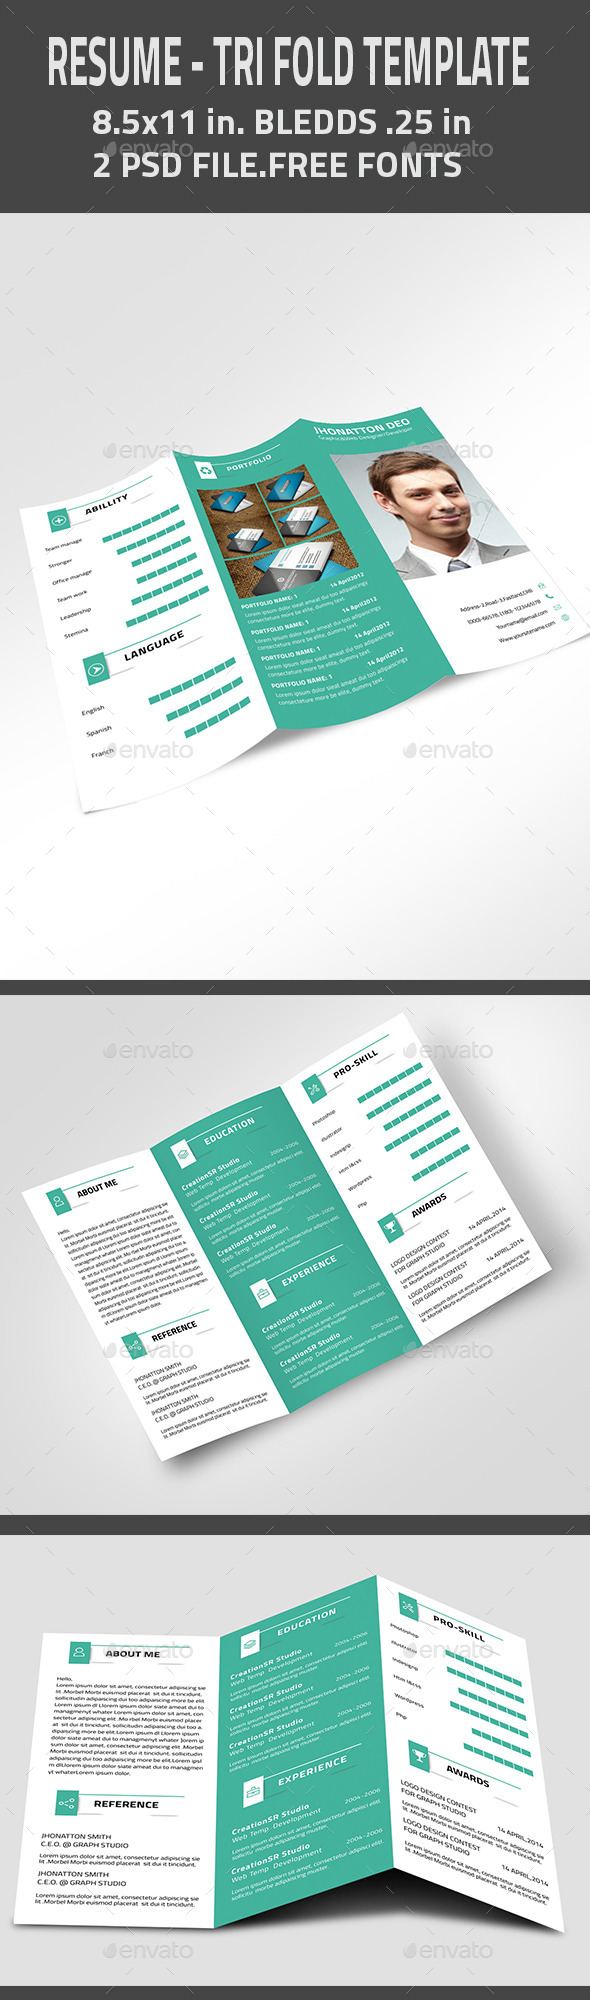 Resume Trifold Template